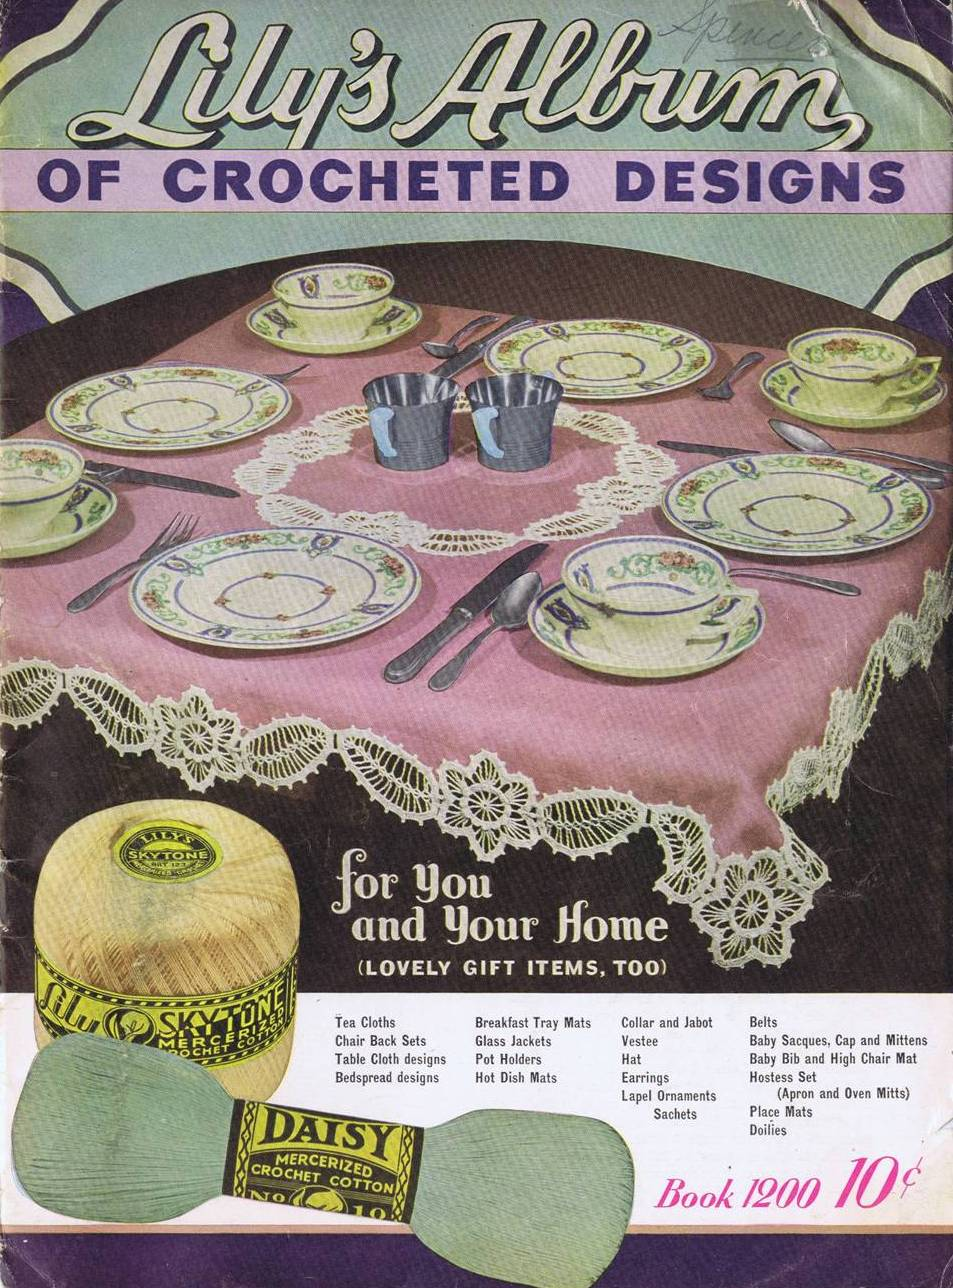 Vintage Crochet Patterns Luncheon Doilies Place Mats Lily Mills Book 1200